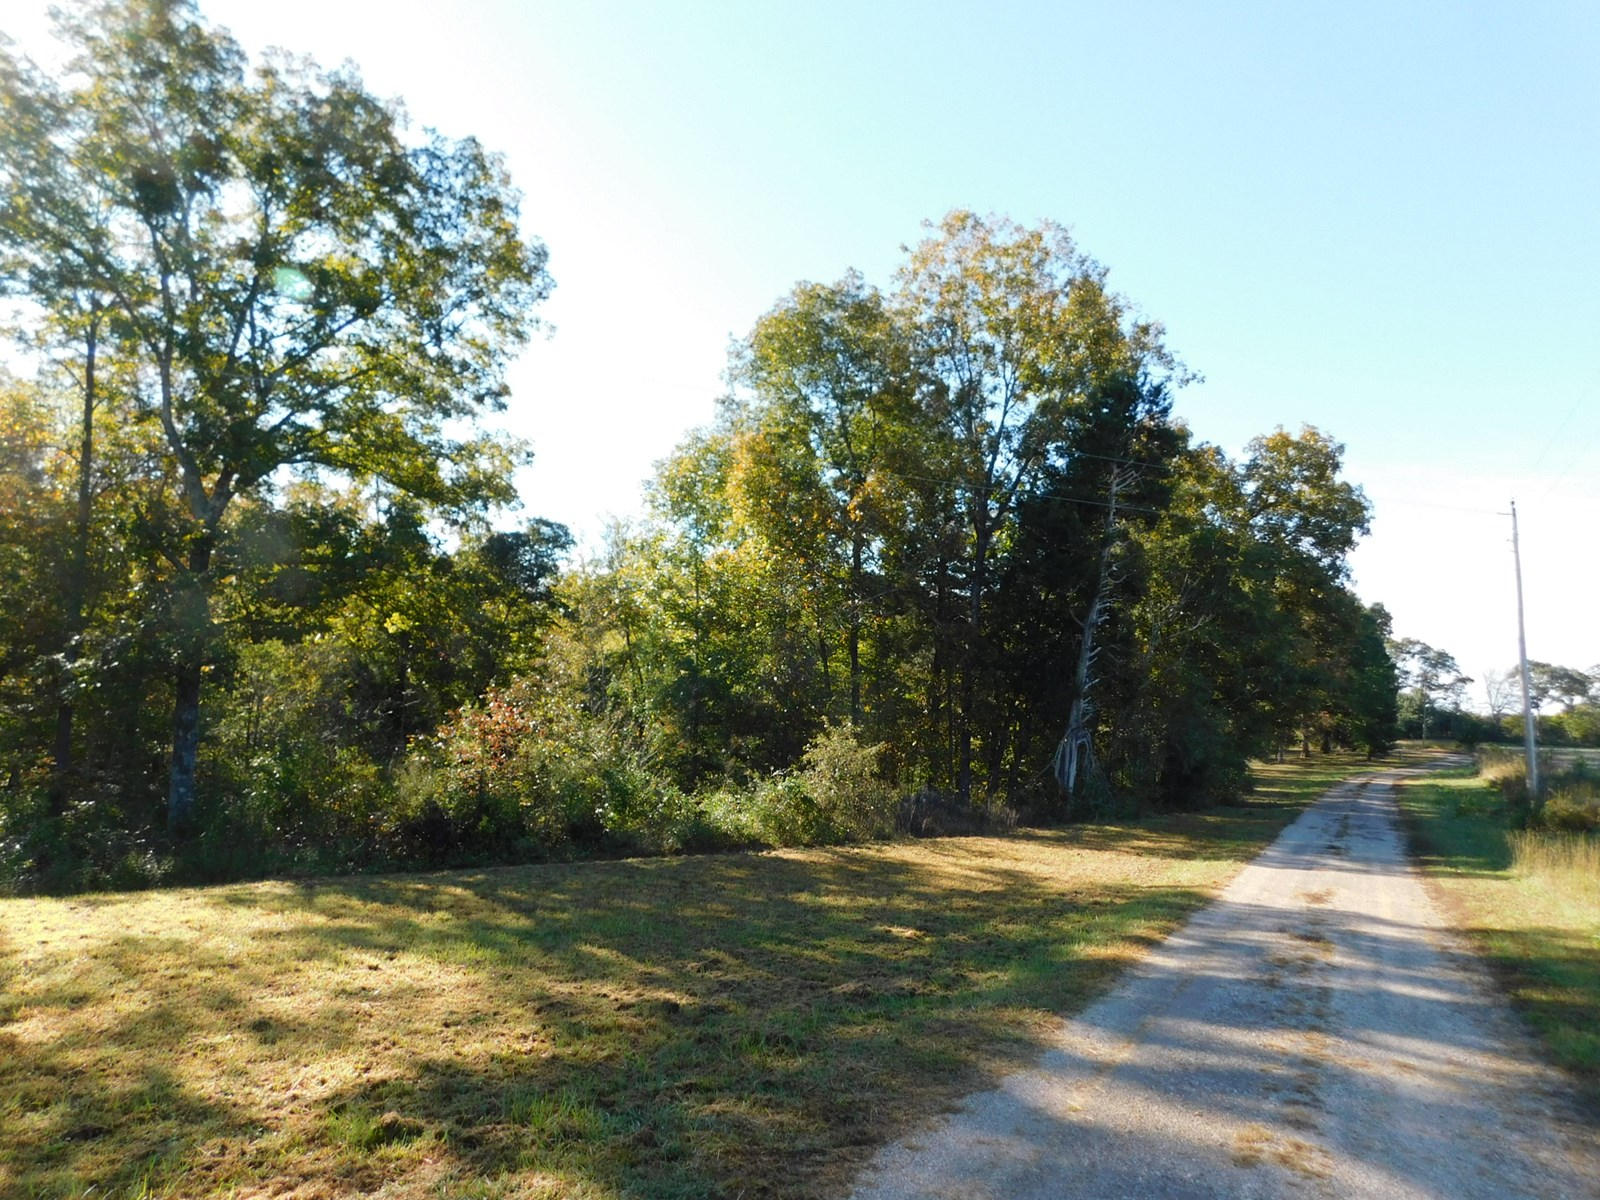 LAND TO BUILD ON NEAR PICKWICK LAKE WITH NO RESTRICTIONS